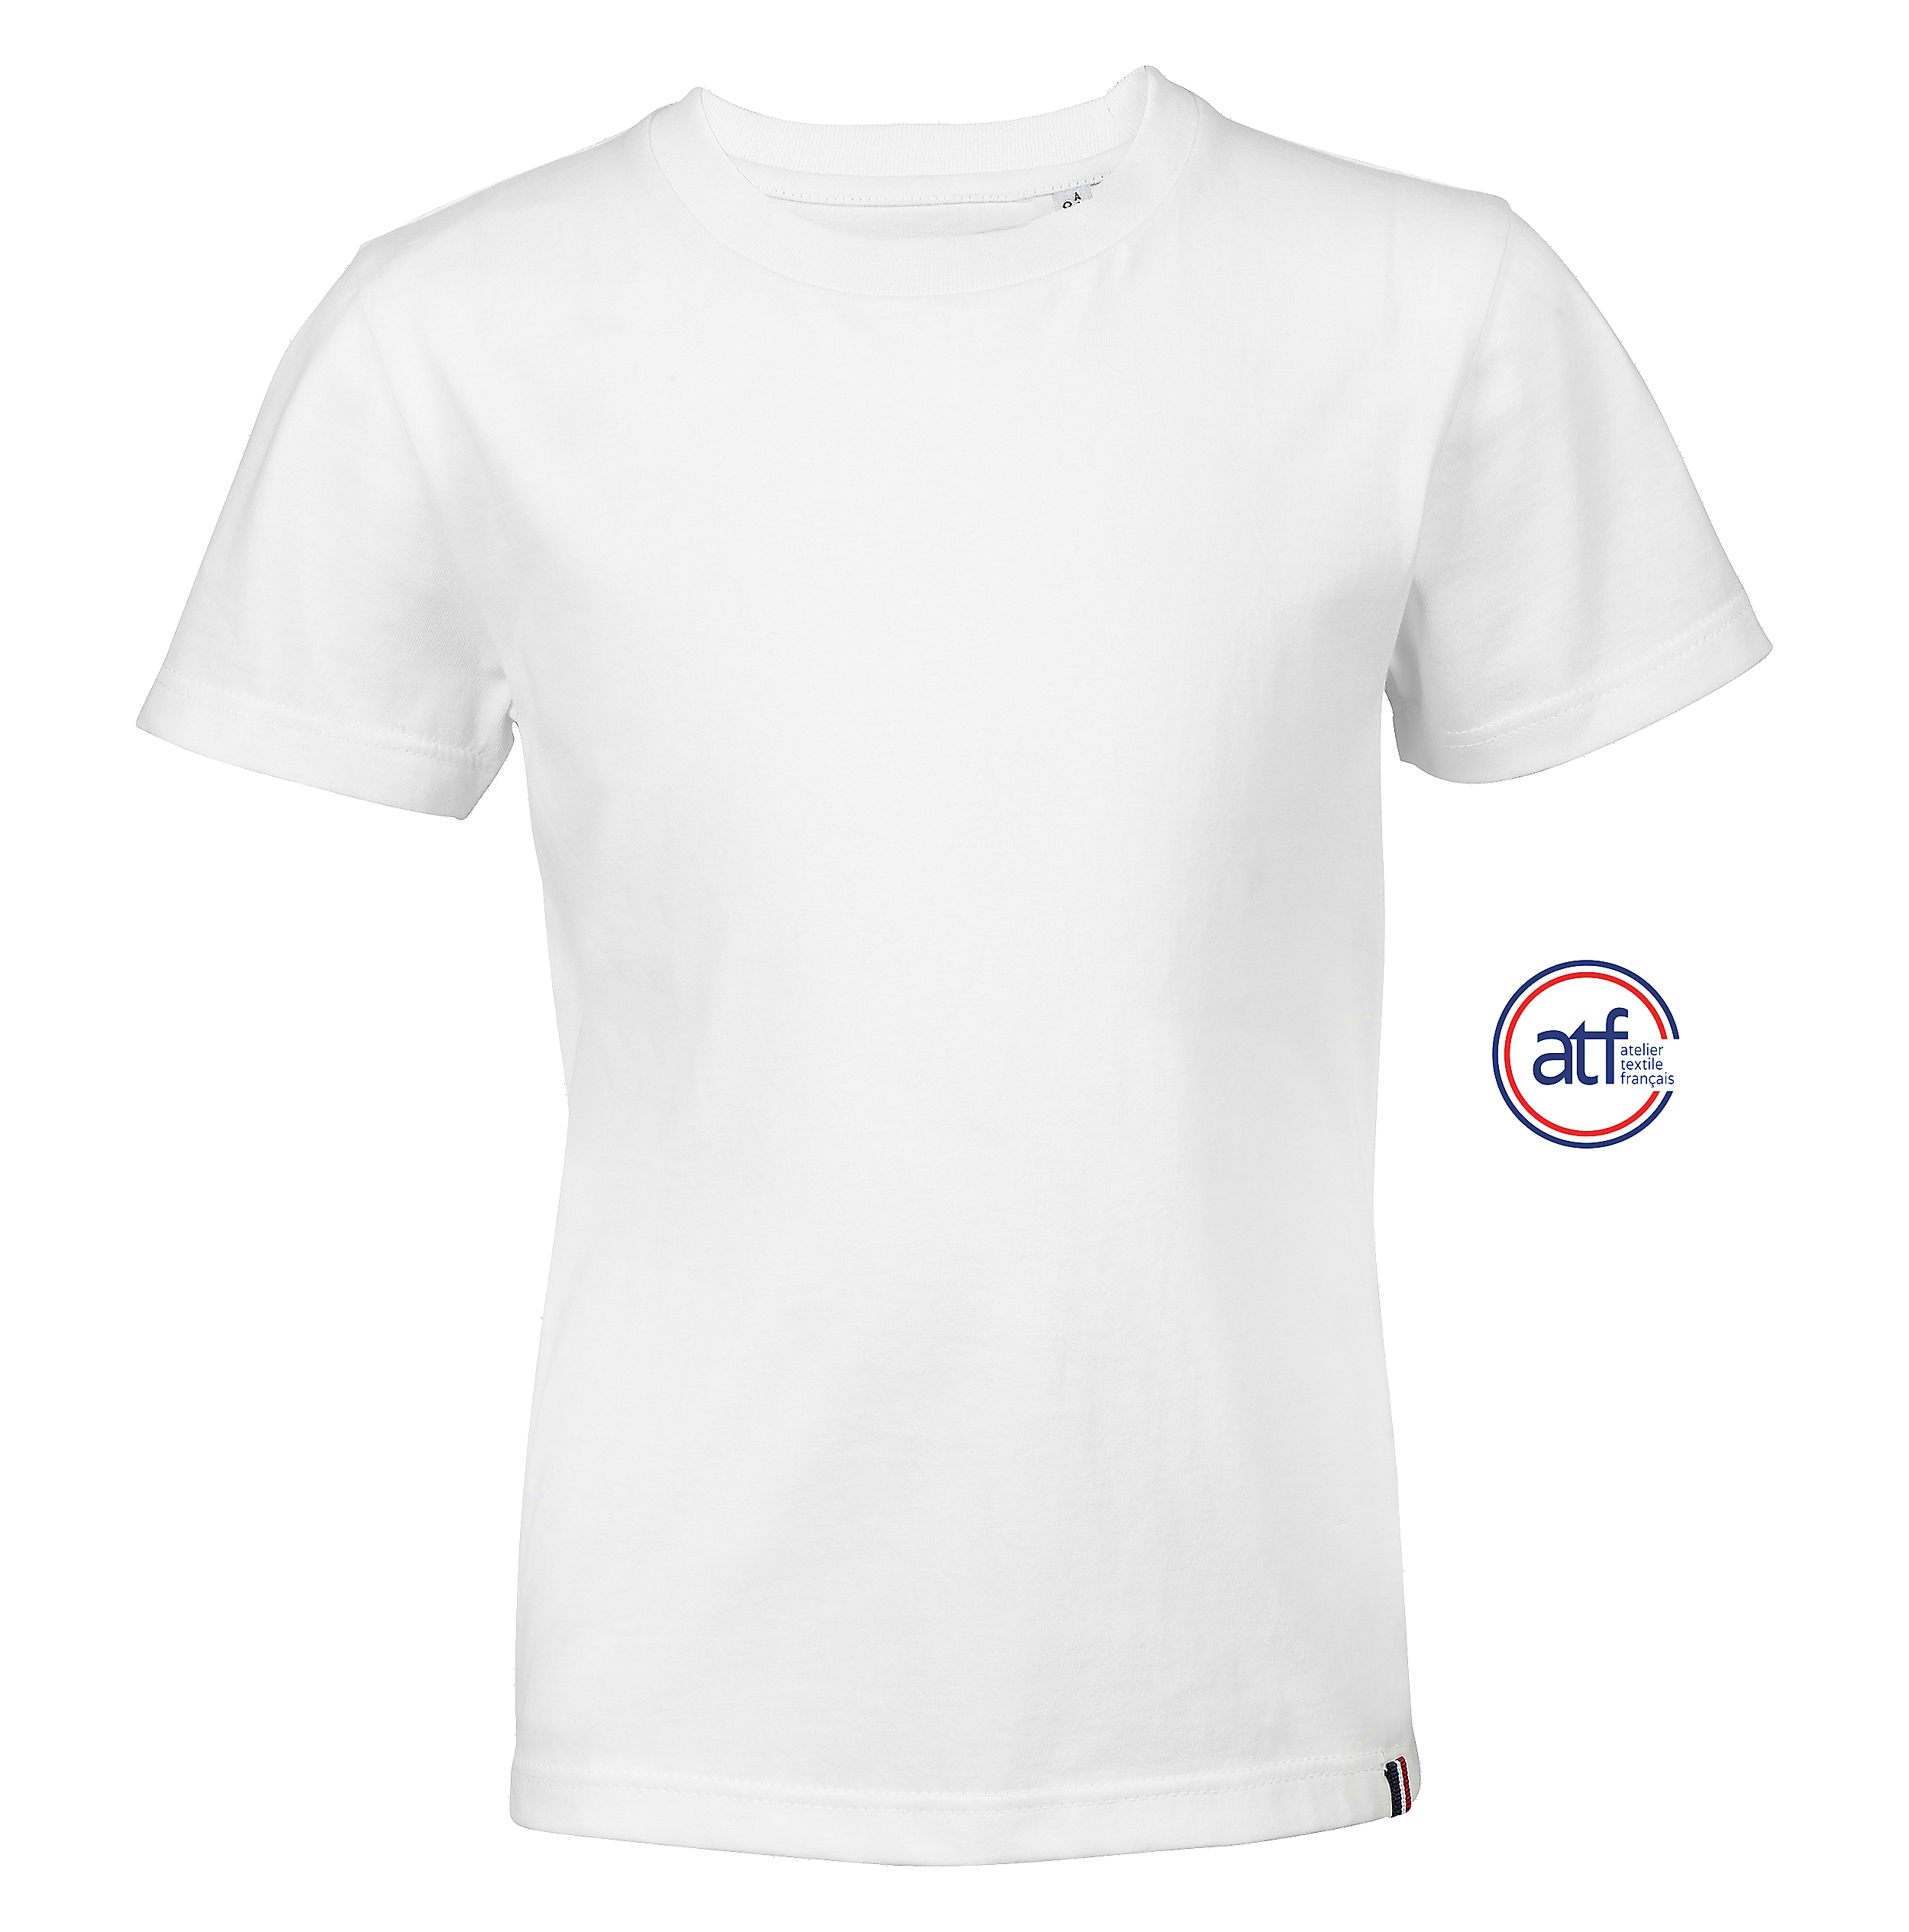 Tee-shirt enfant col rond made in France